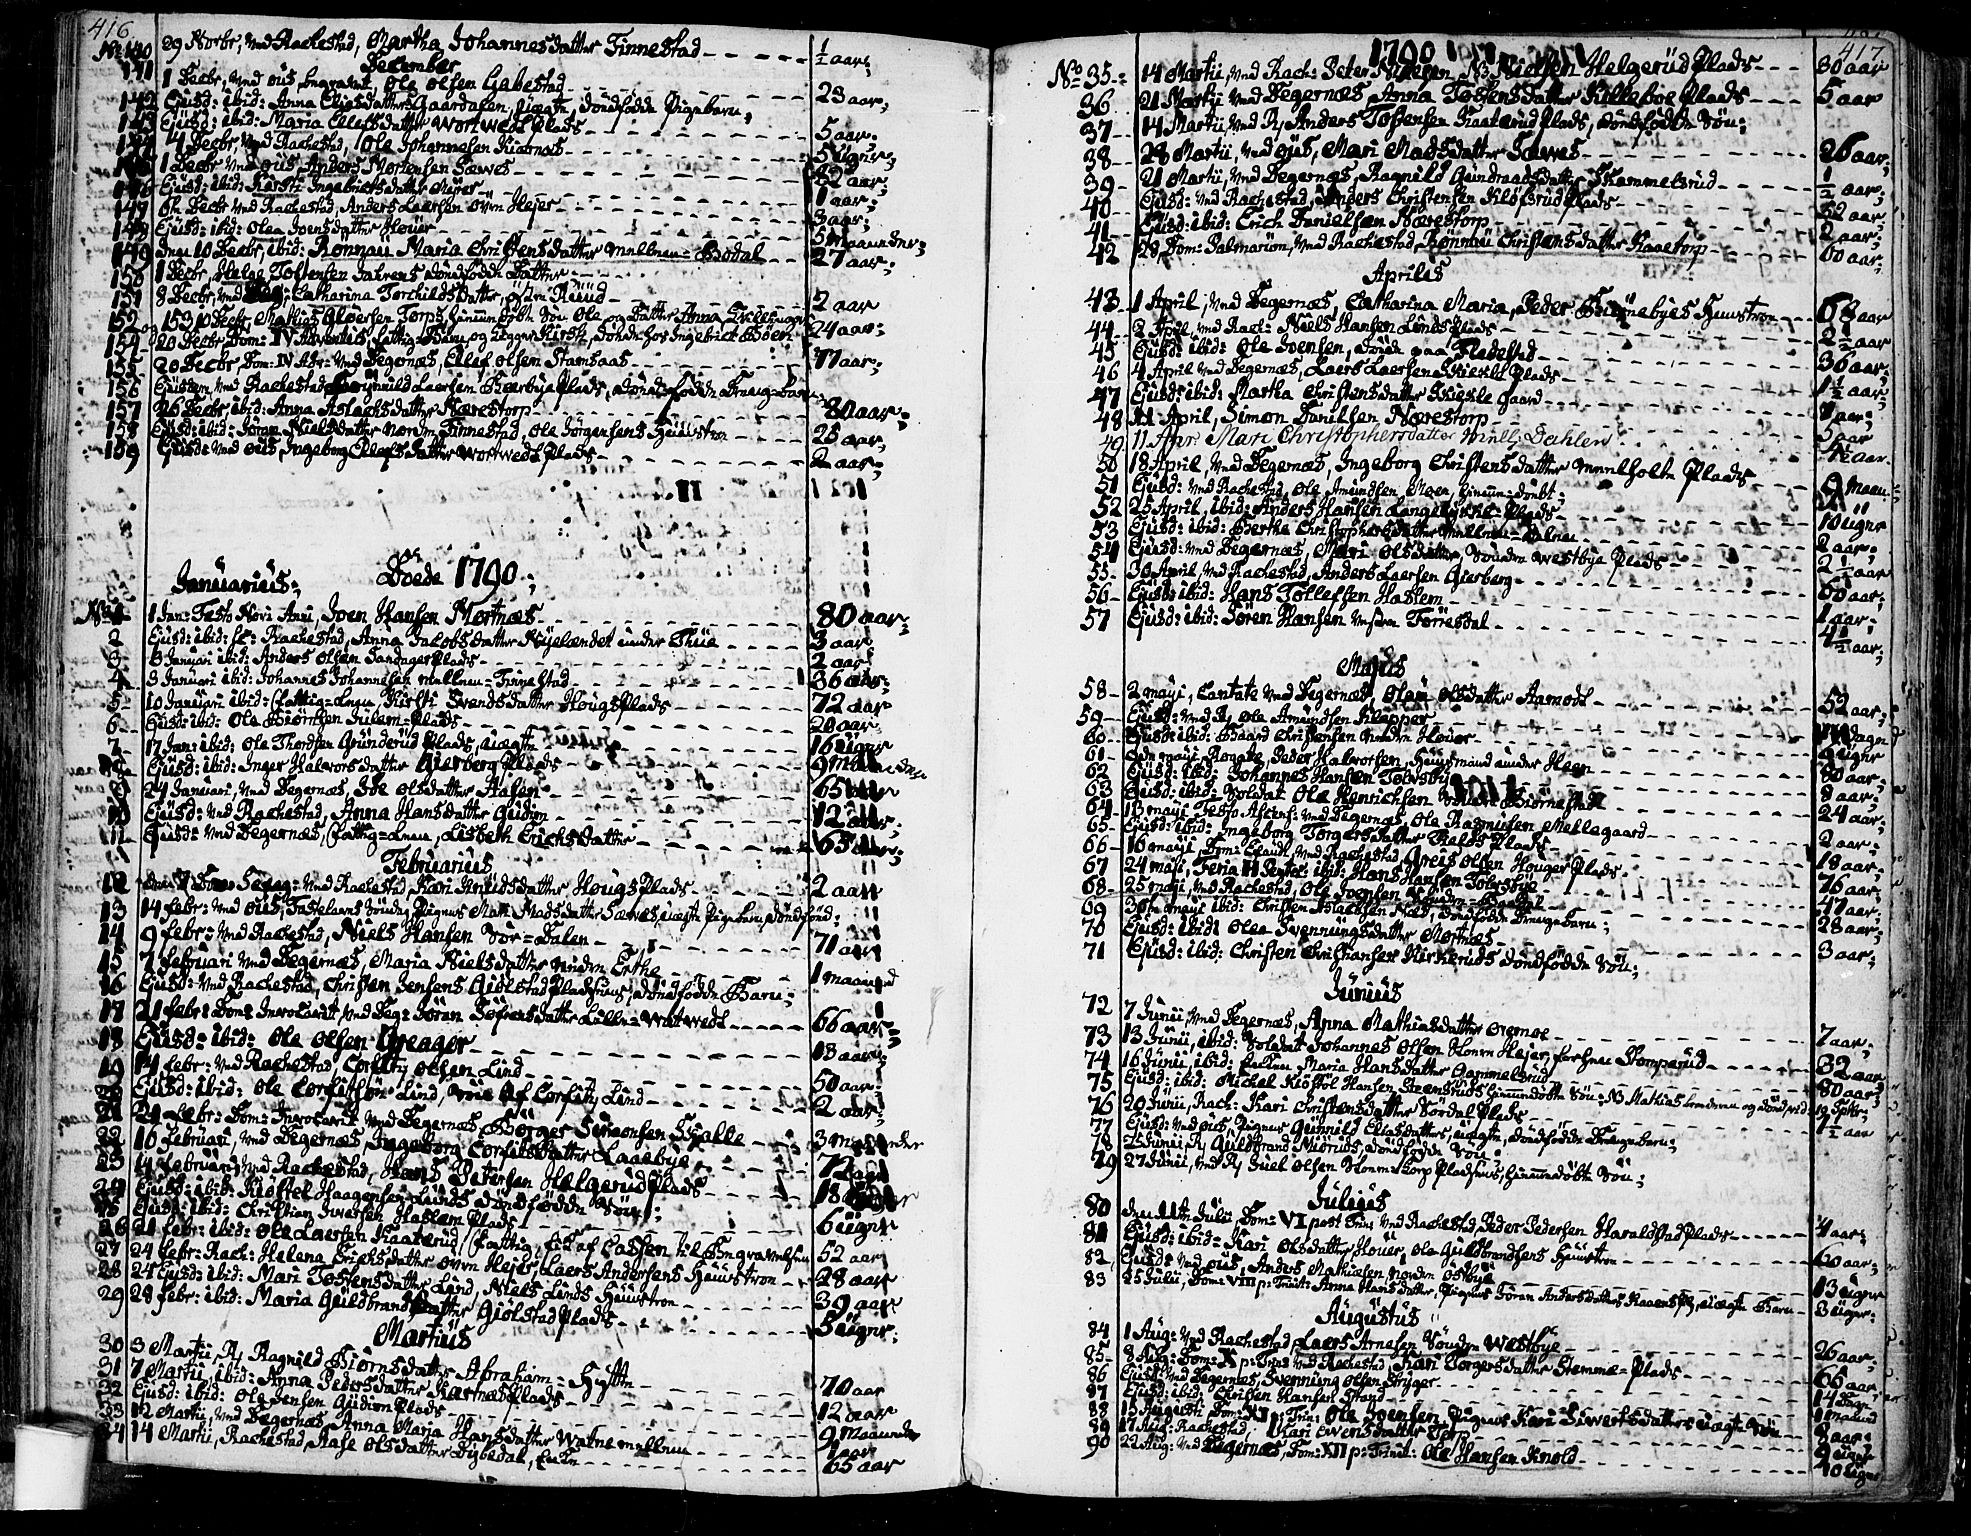 SAO, Rakkestad prestekontor Kirkebøker, F/Fa/L0005: Parish register (official) no. I 5, 1784-1814, p. 416-417